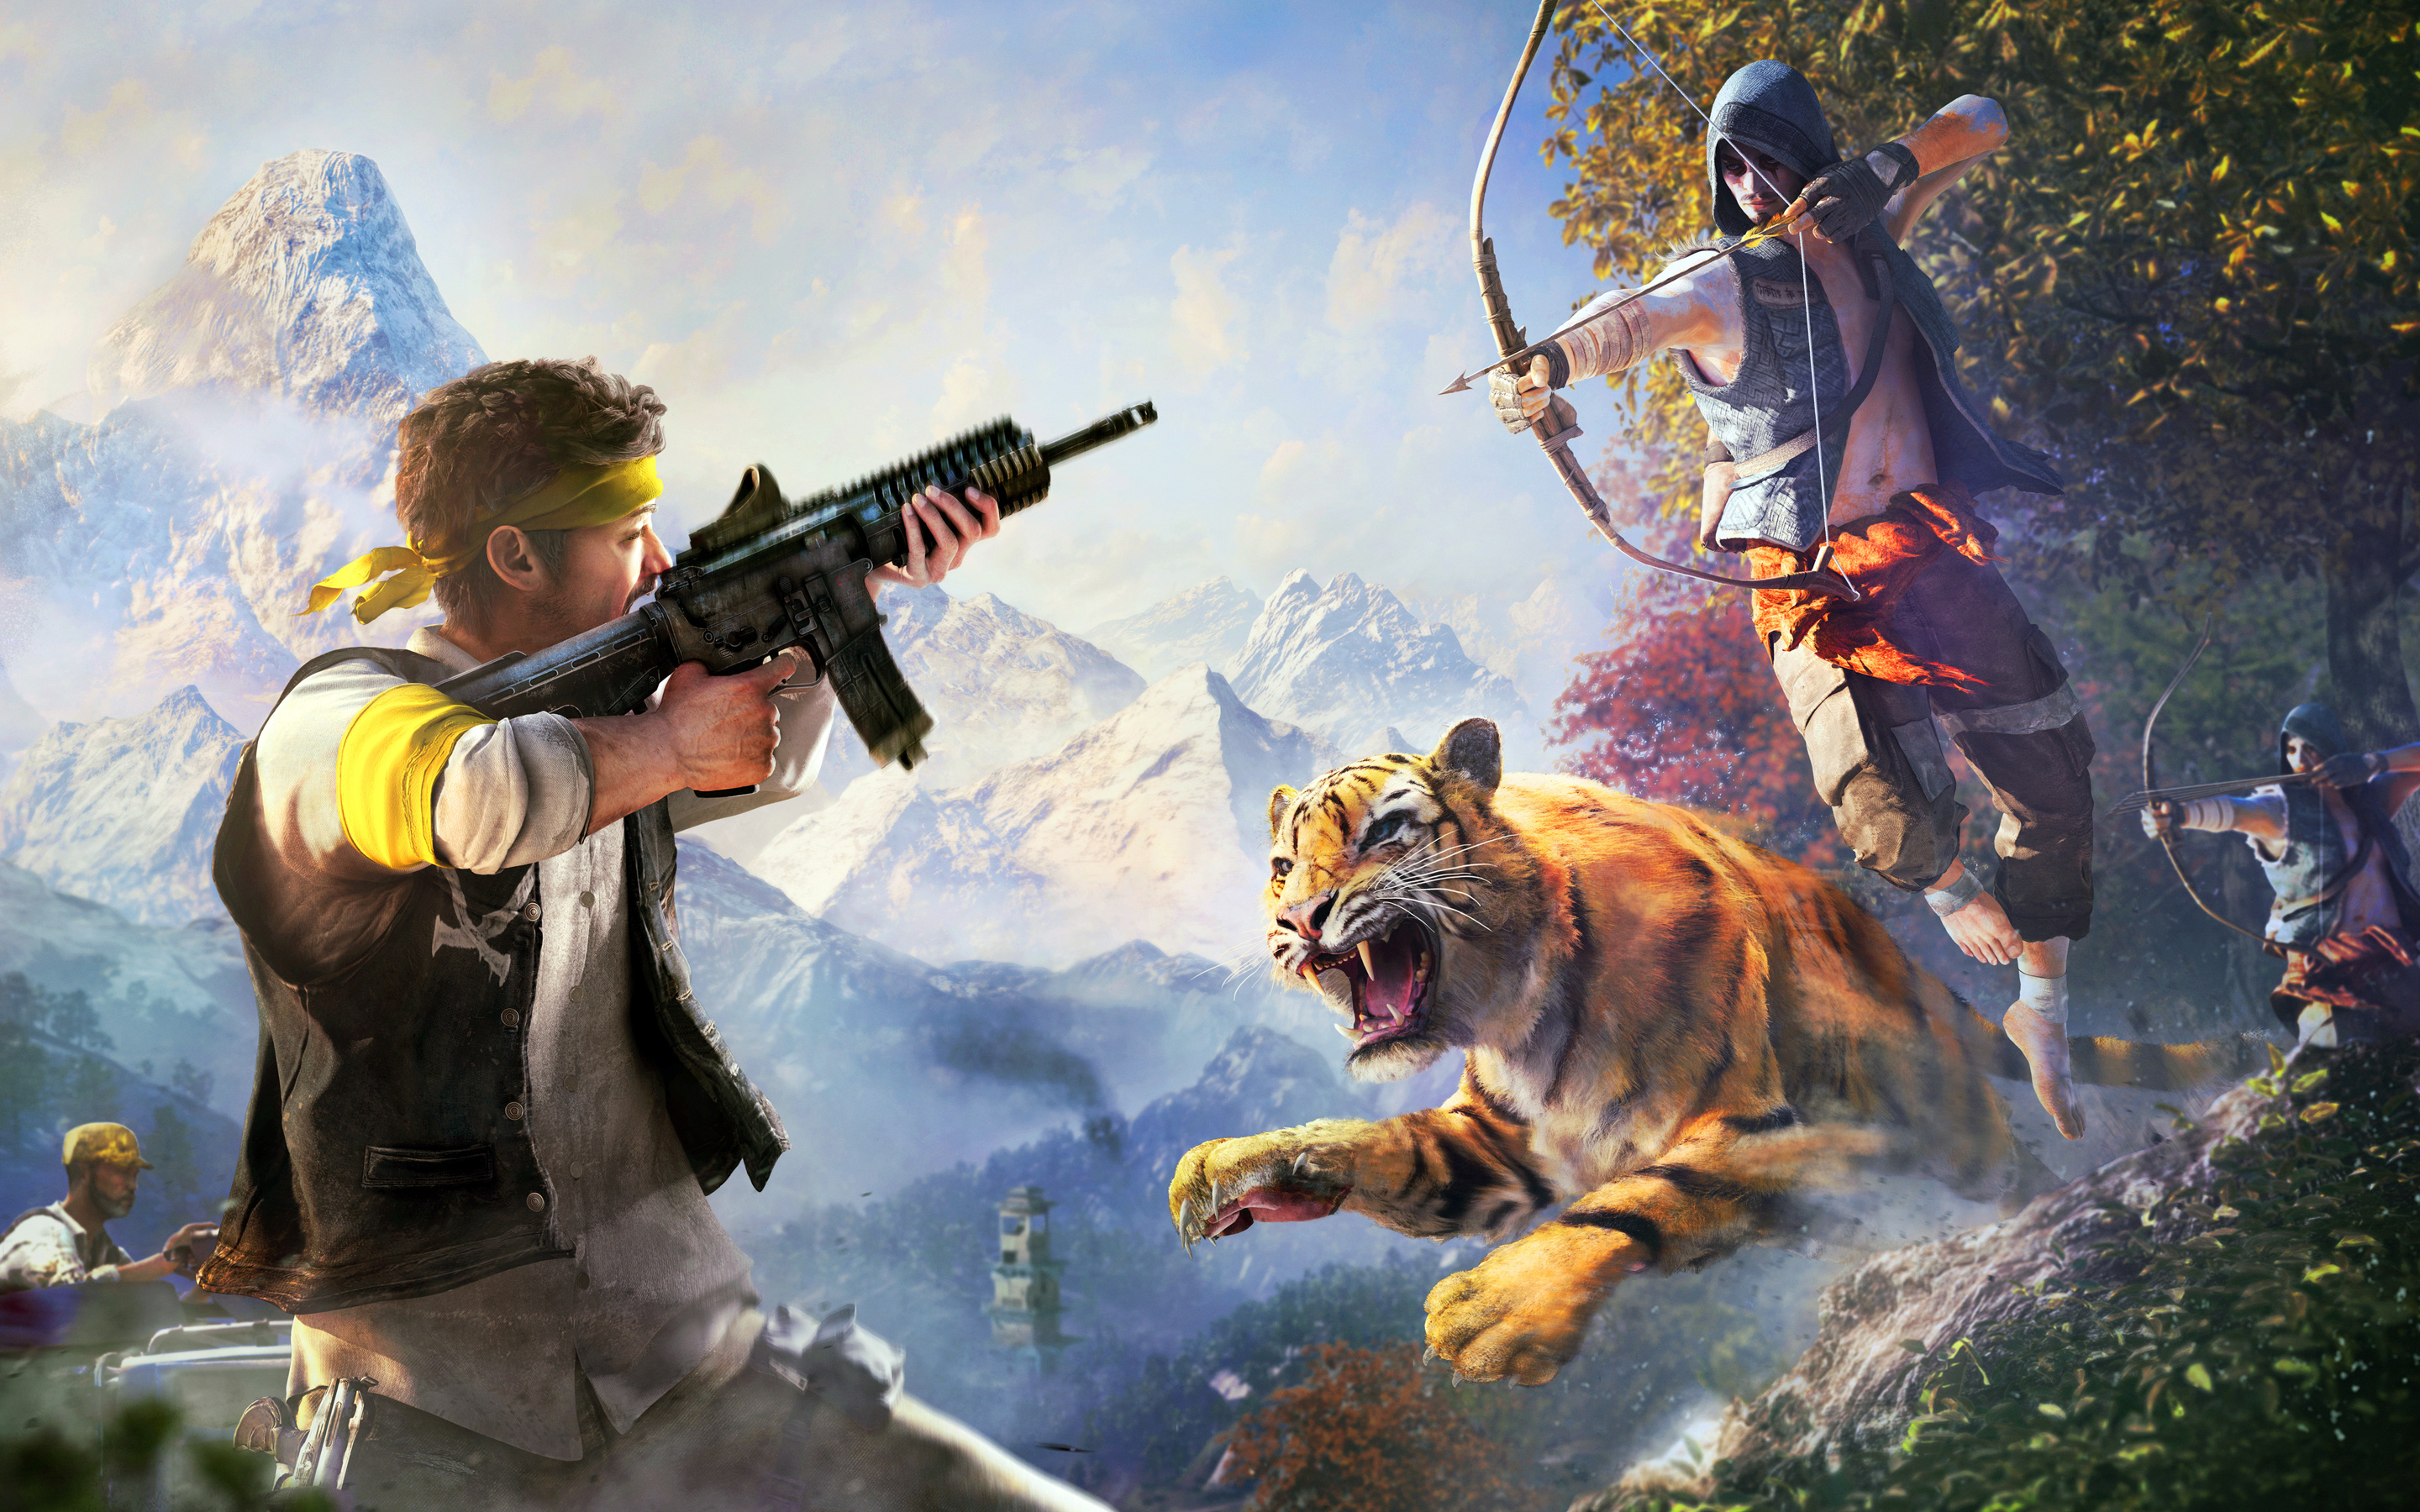 Far Cry 4 Wallpaper Image Pics